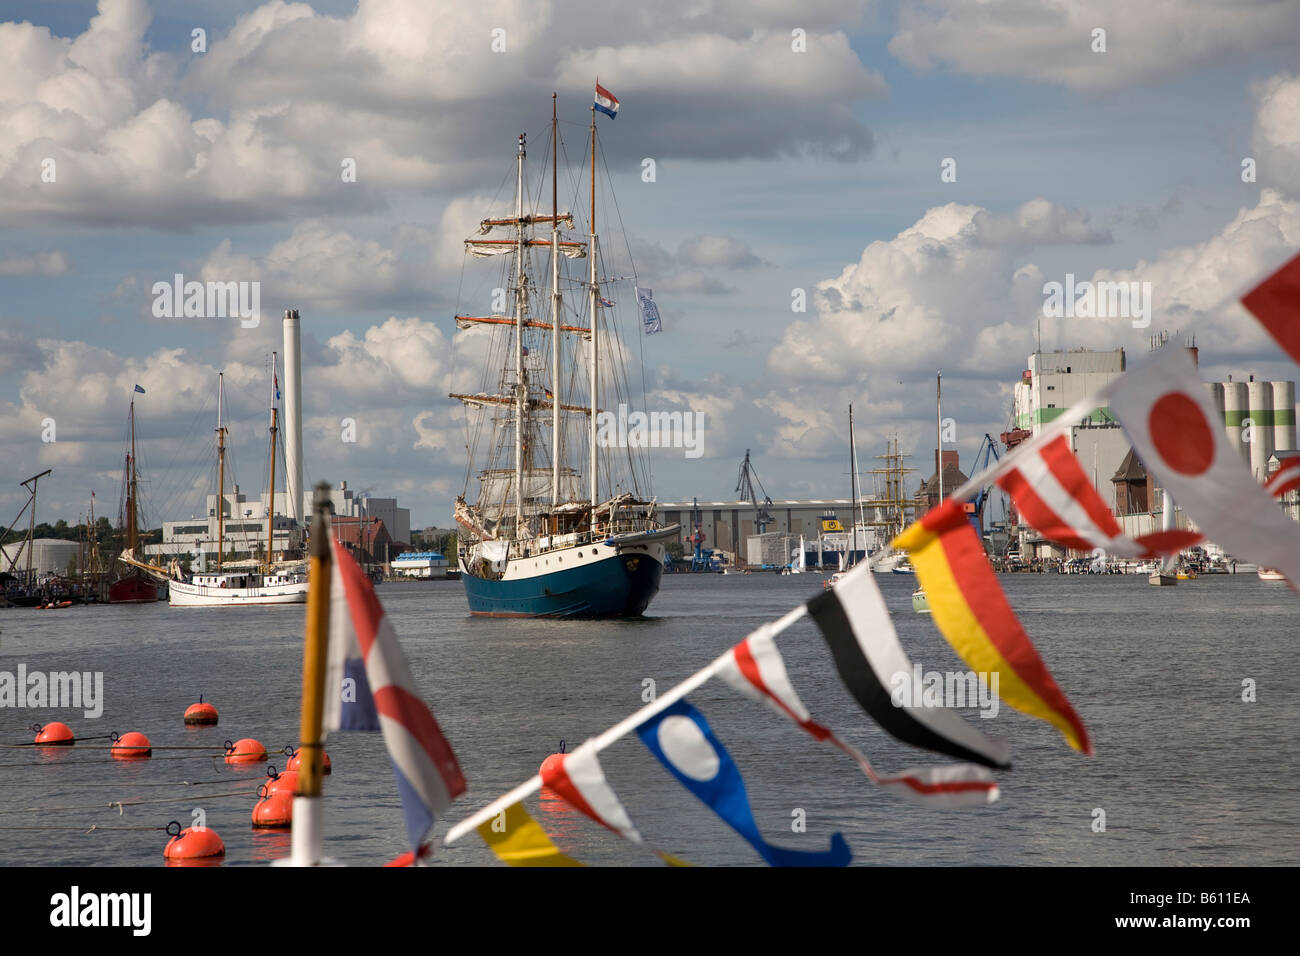 Square-rigged sailing ship during the Flensburg Nautics sailing festival, Innenfoerde, Flensburg, Schleswig-Holstein - Stock Image